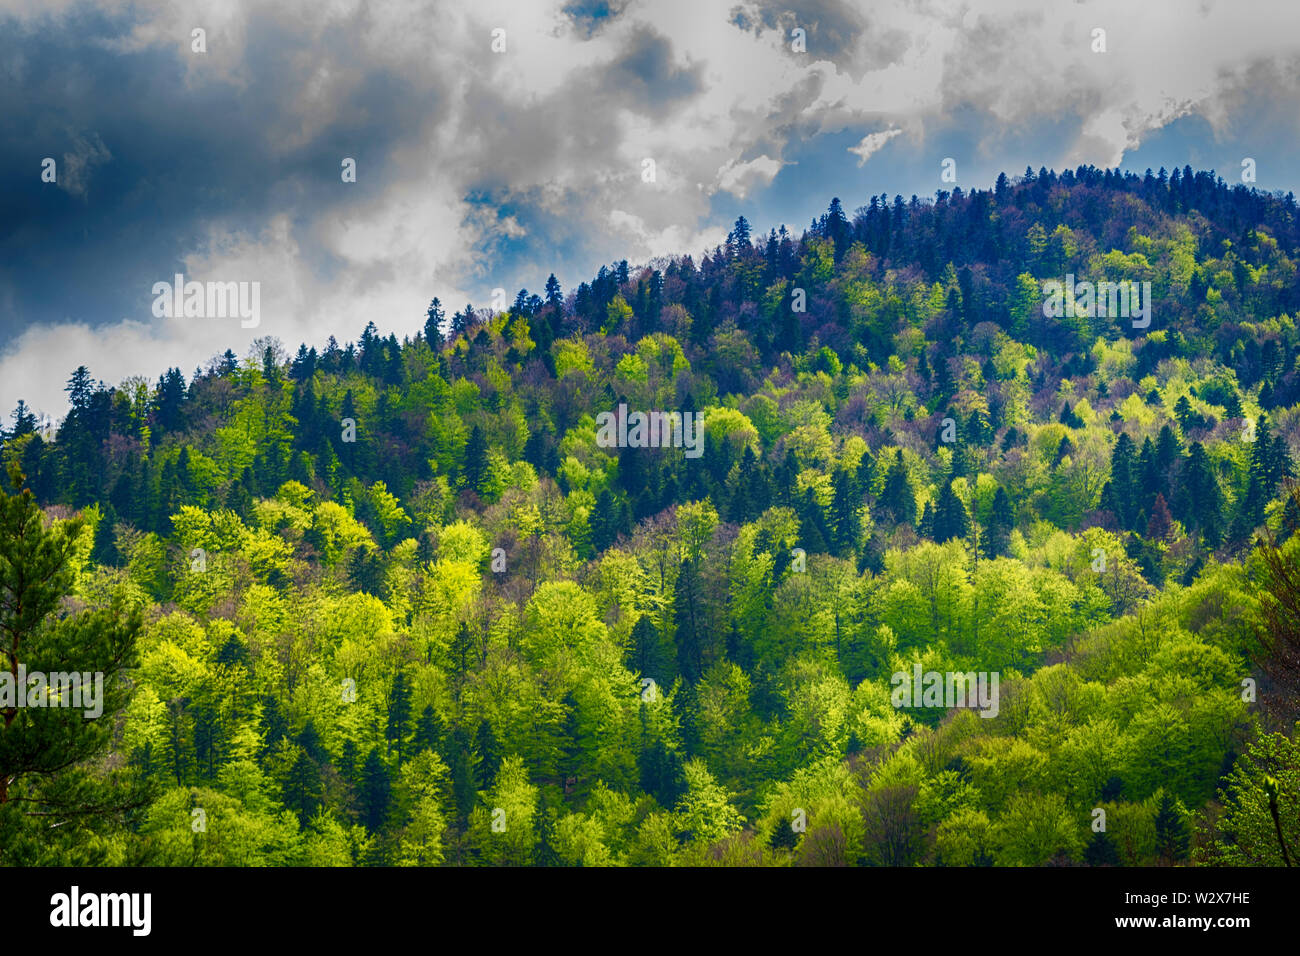 dramatic forest landscape. Hill covered with green trees with strong clouds in the sky. - Stock Image